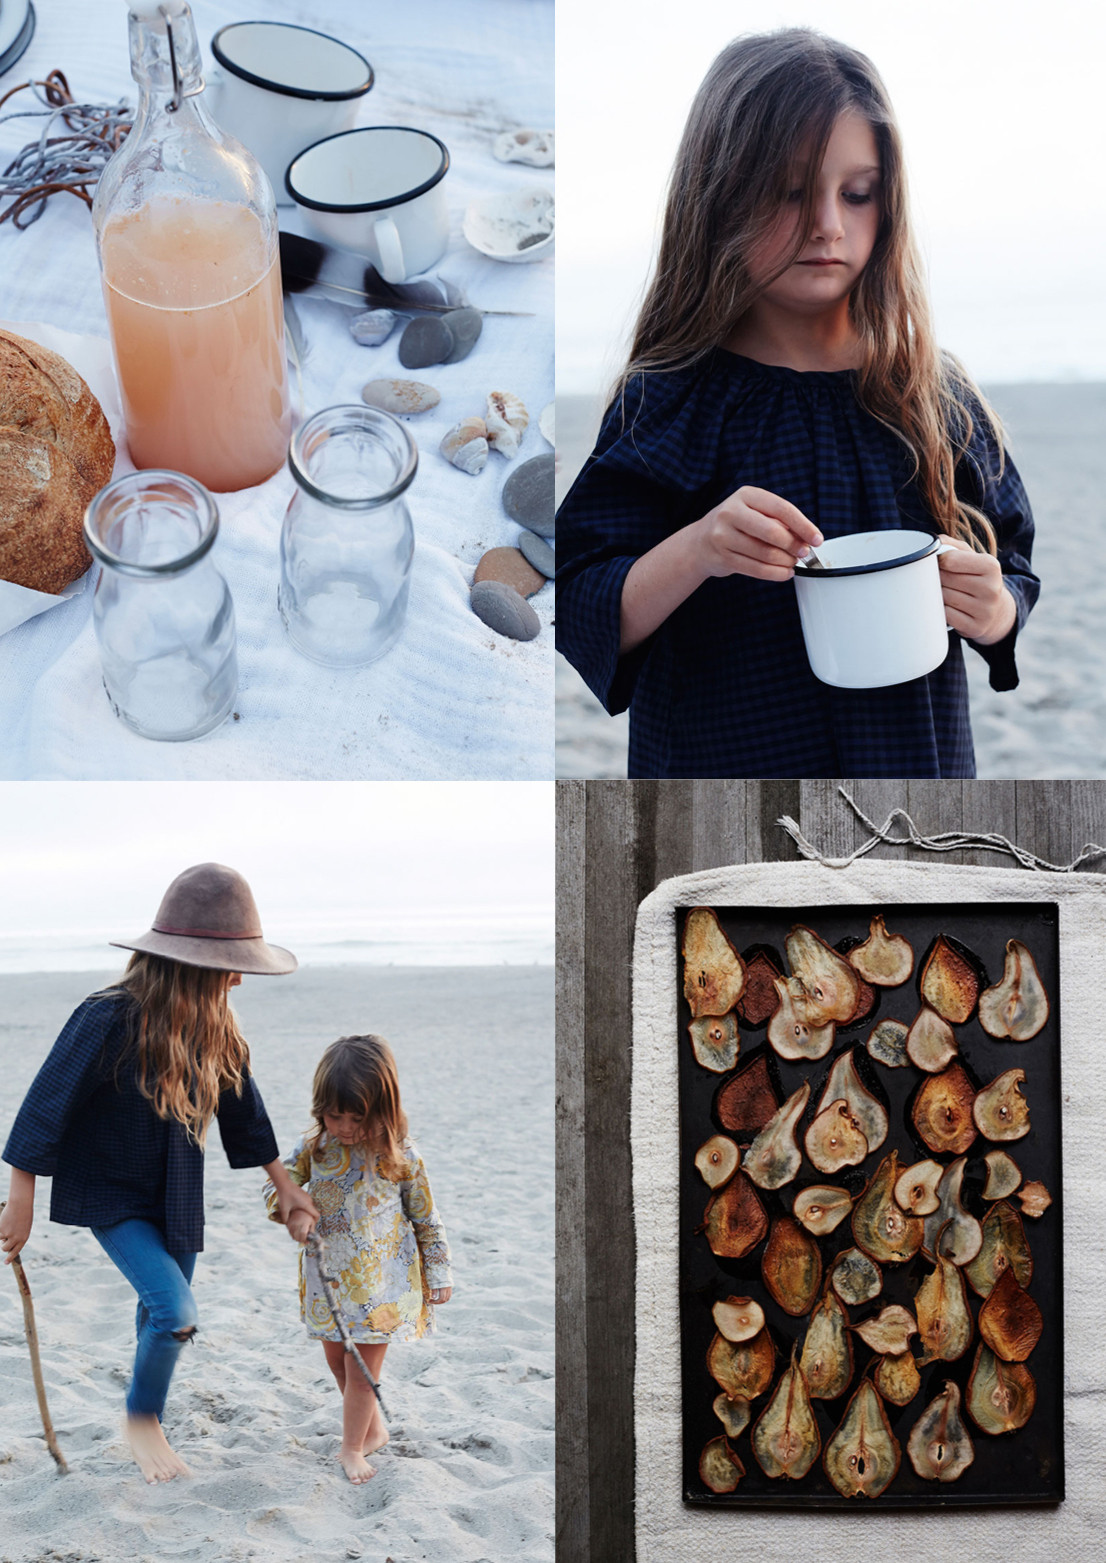 Elements of an autumn picnic: fruit-flavored sodas in swing-top glass bottles, enamel mugs for soup, a tray of roasted pear chips for snacking, and plenty of beachcombing on the agenda.